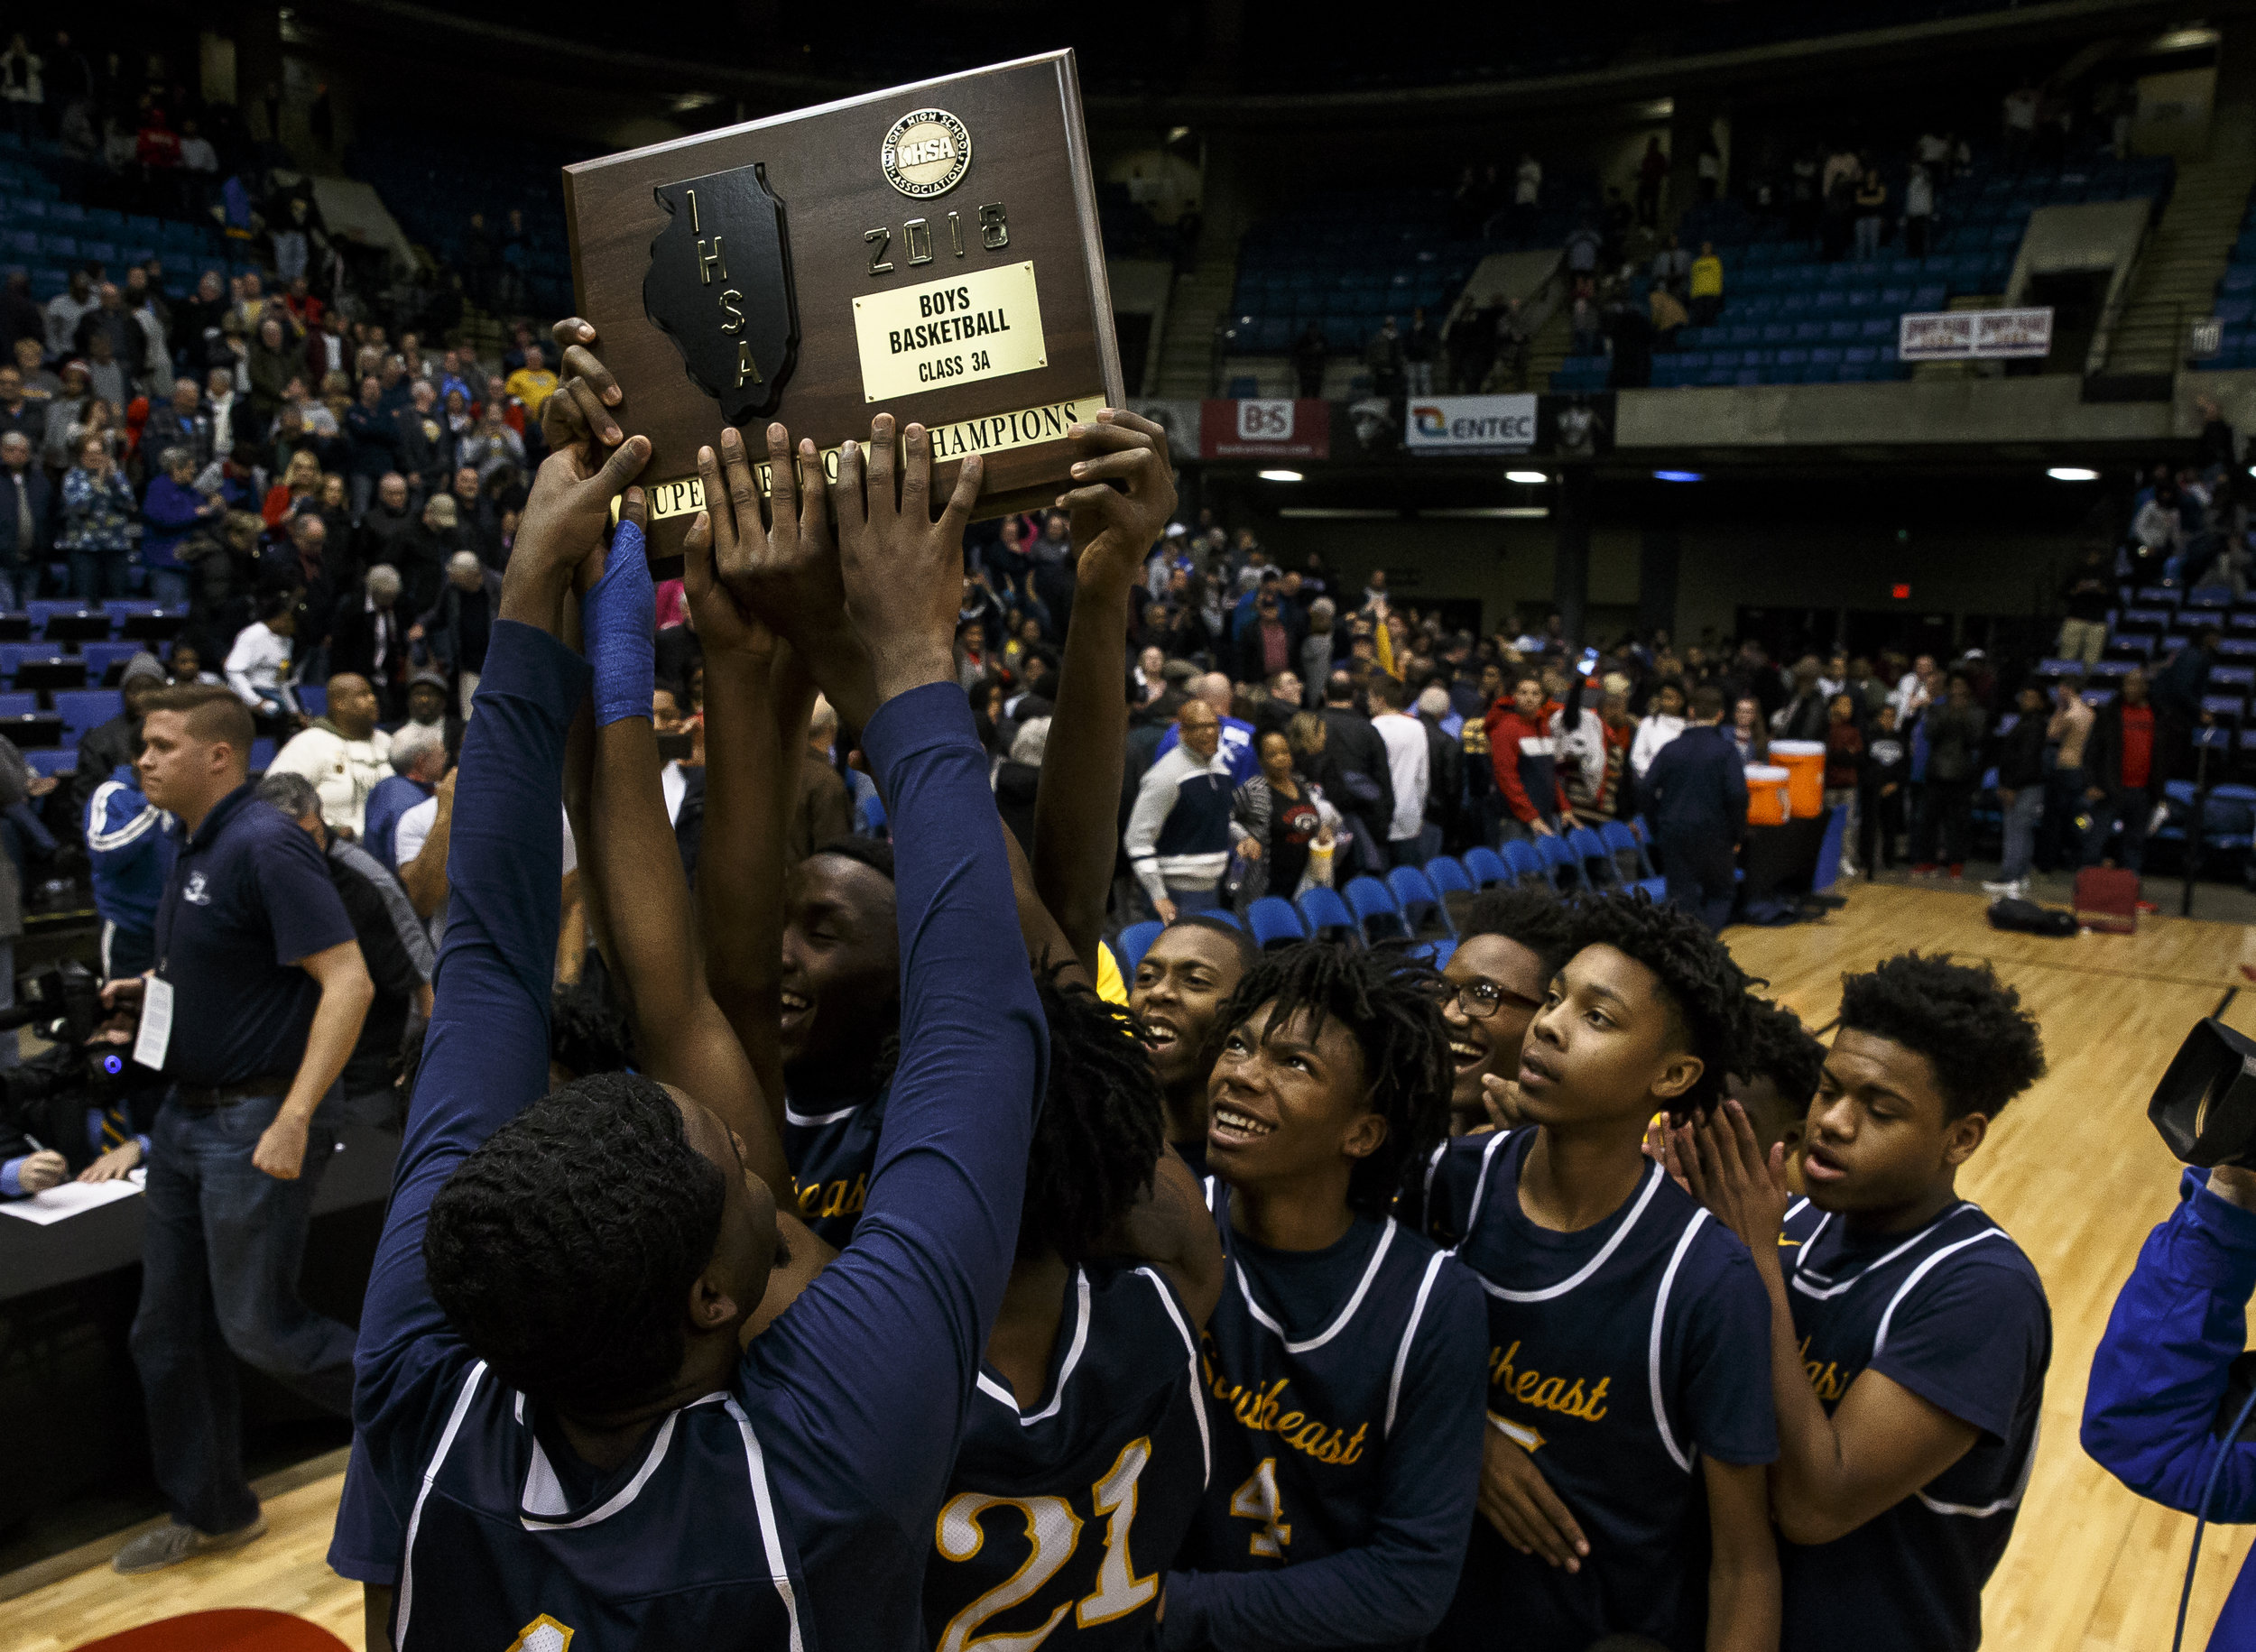 Southeast's Terrion Murdix (4) looks up at the championship plaque as he celebrates with his teammates  after their 56-51 victory over Marion in the Class 3A Springfield Supersectional at the Bank of Springfield Center, Tuesday, March 13, 2018, in Springfield, Ill. [Justin L. Fowler/The State Journal-Register]